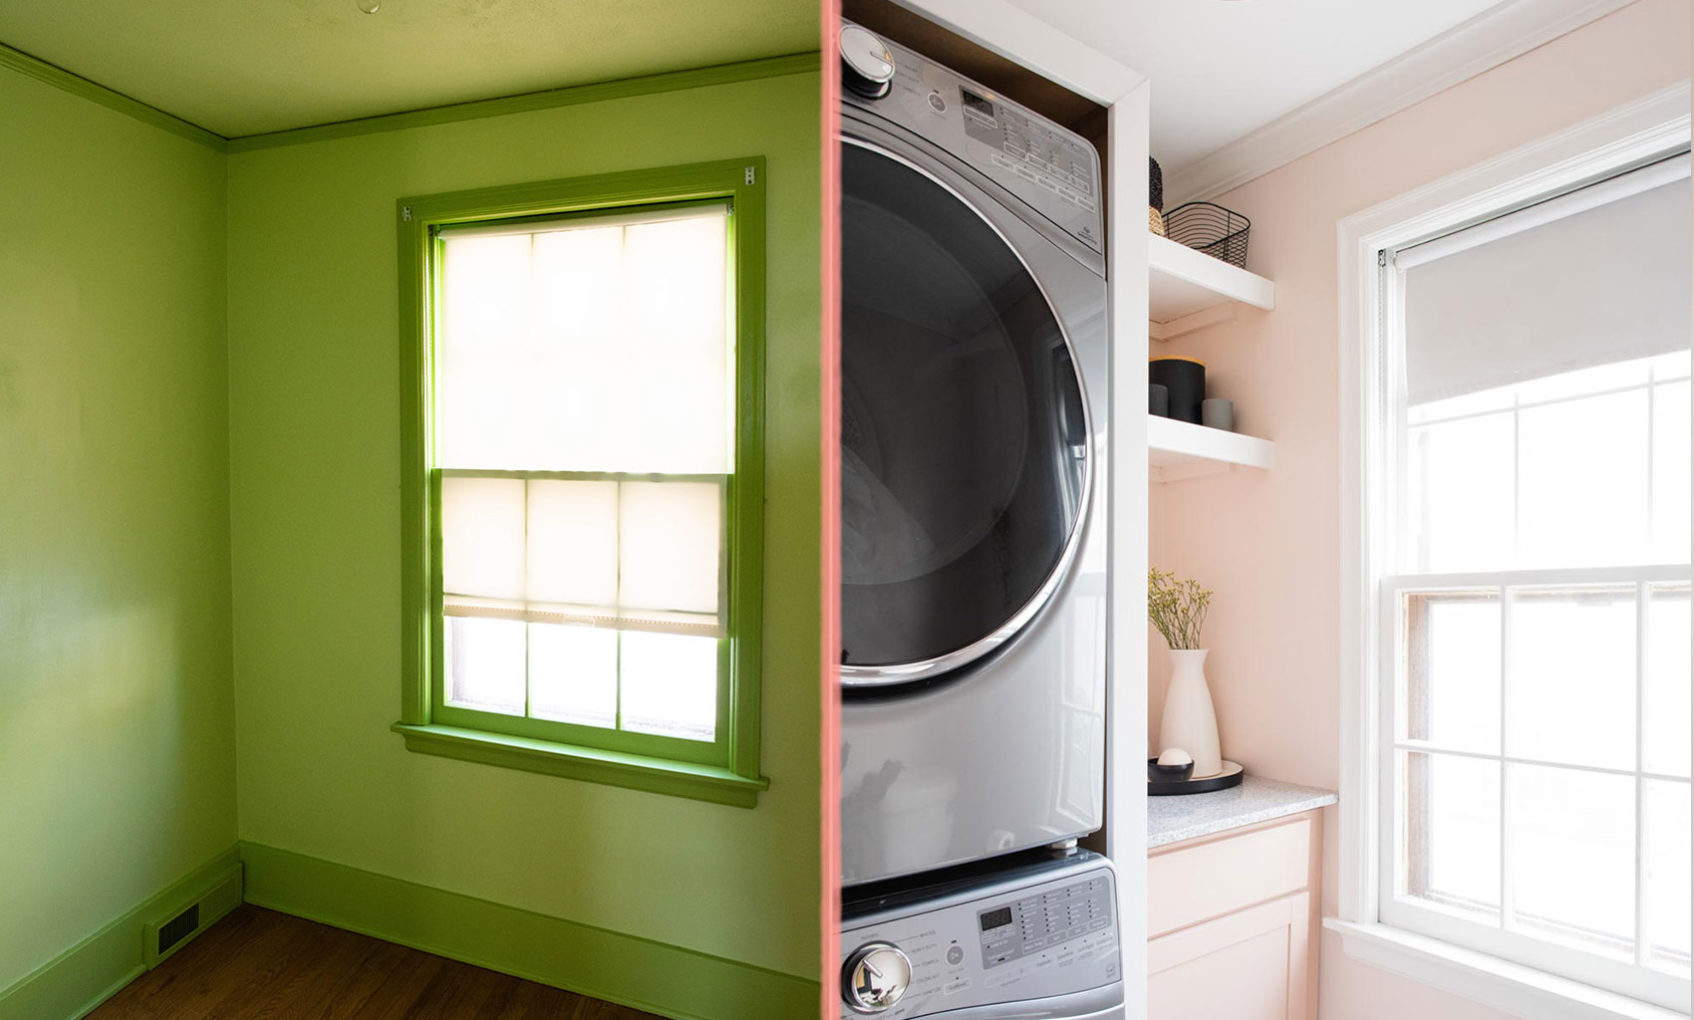 Before & After: Lauren and Austin's Laundry Room Reno